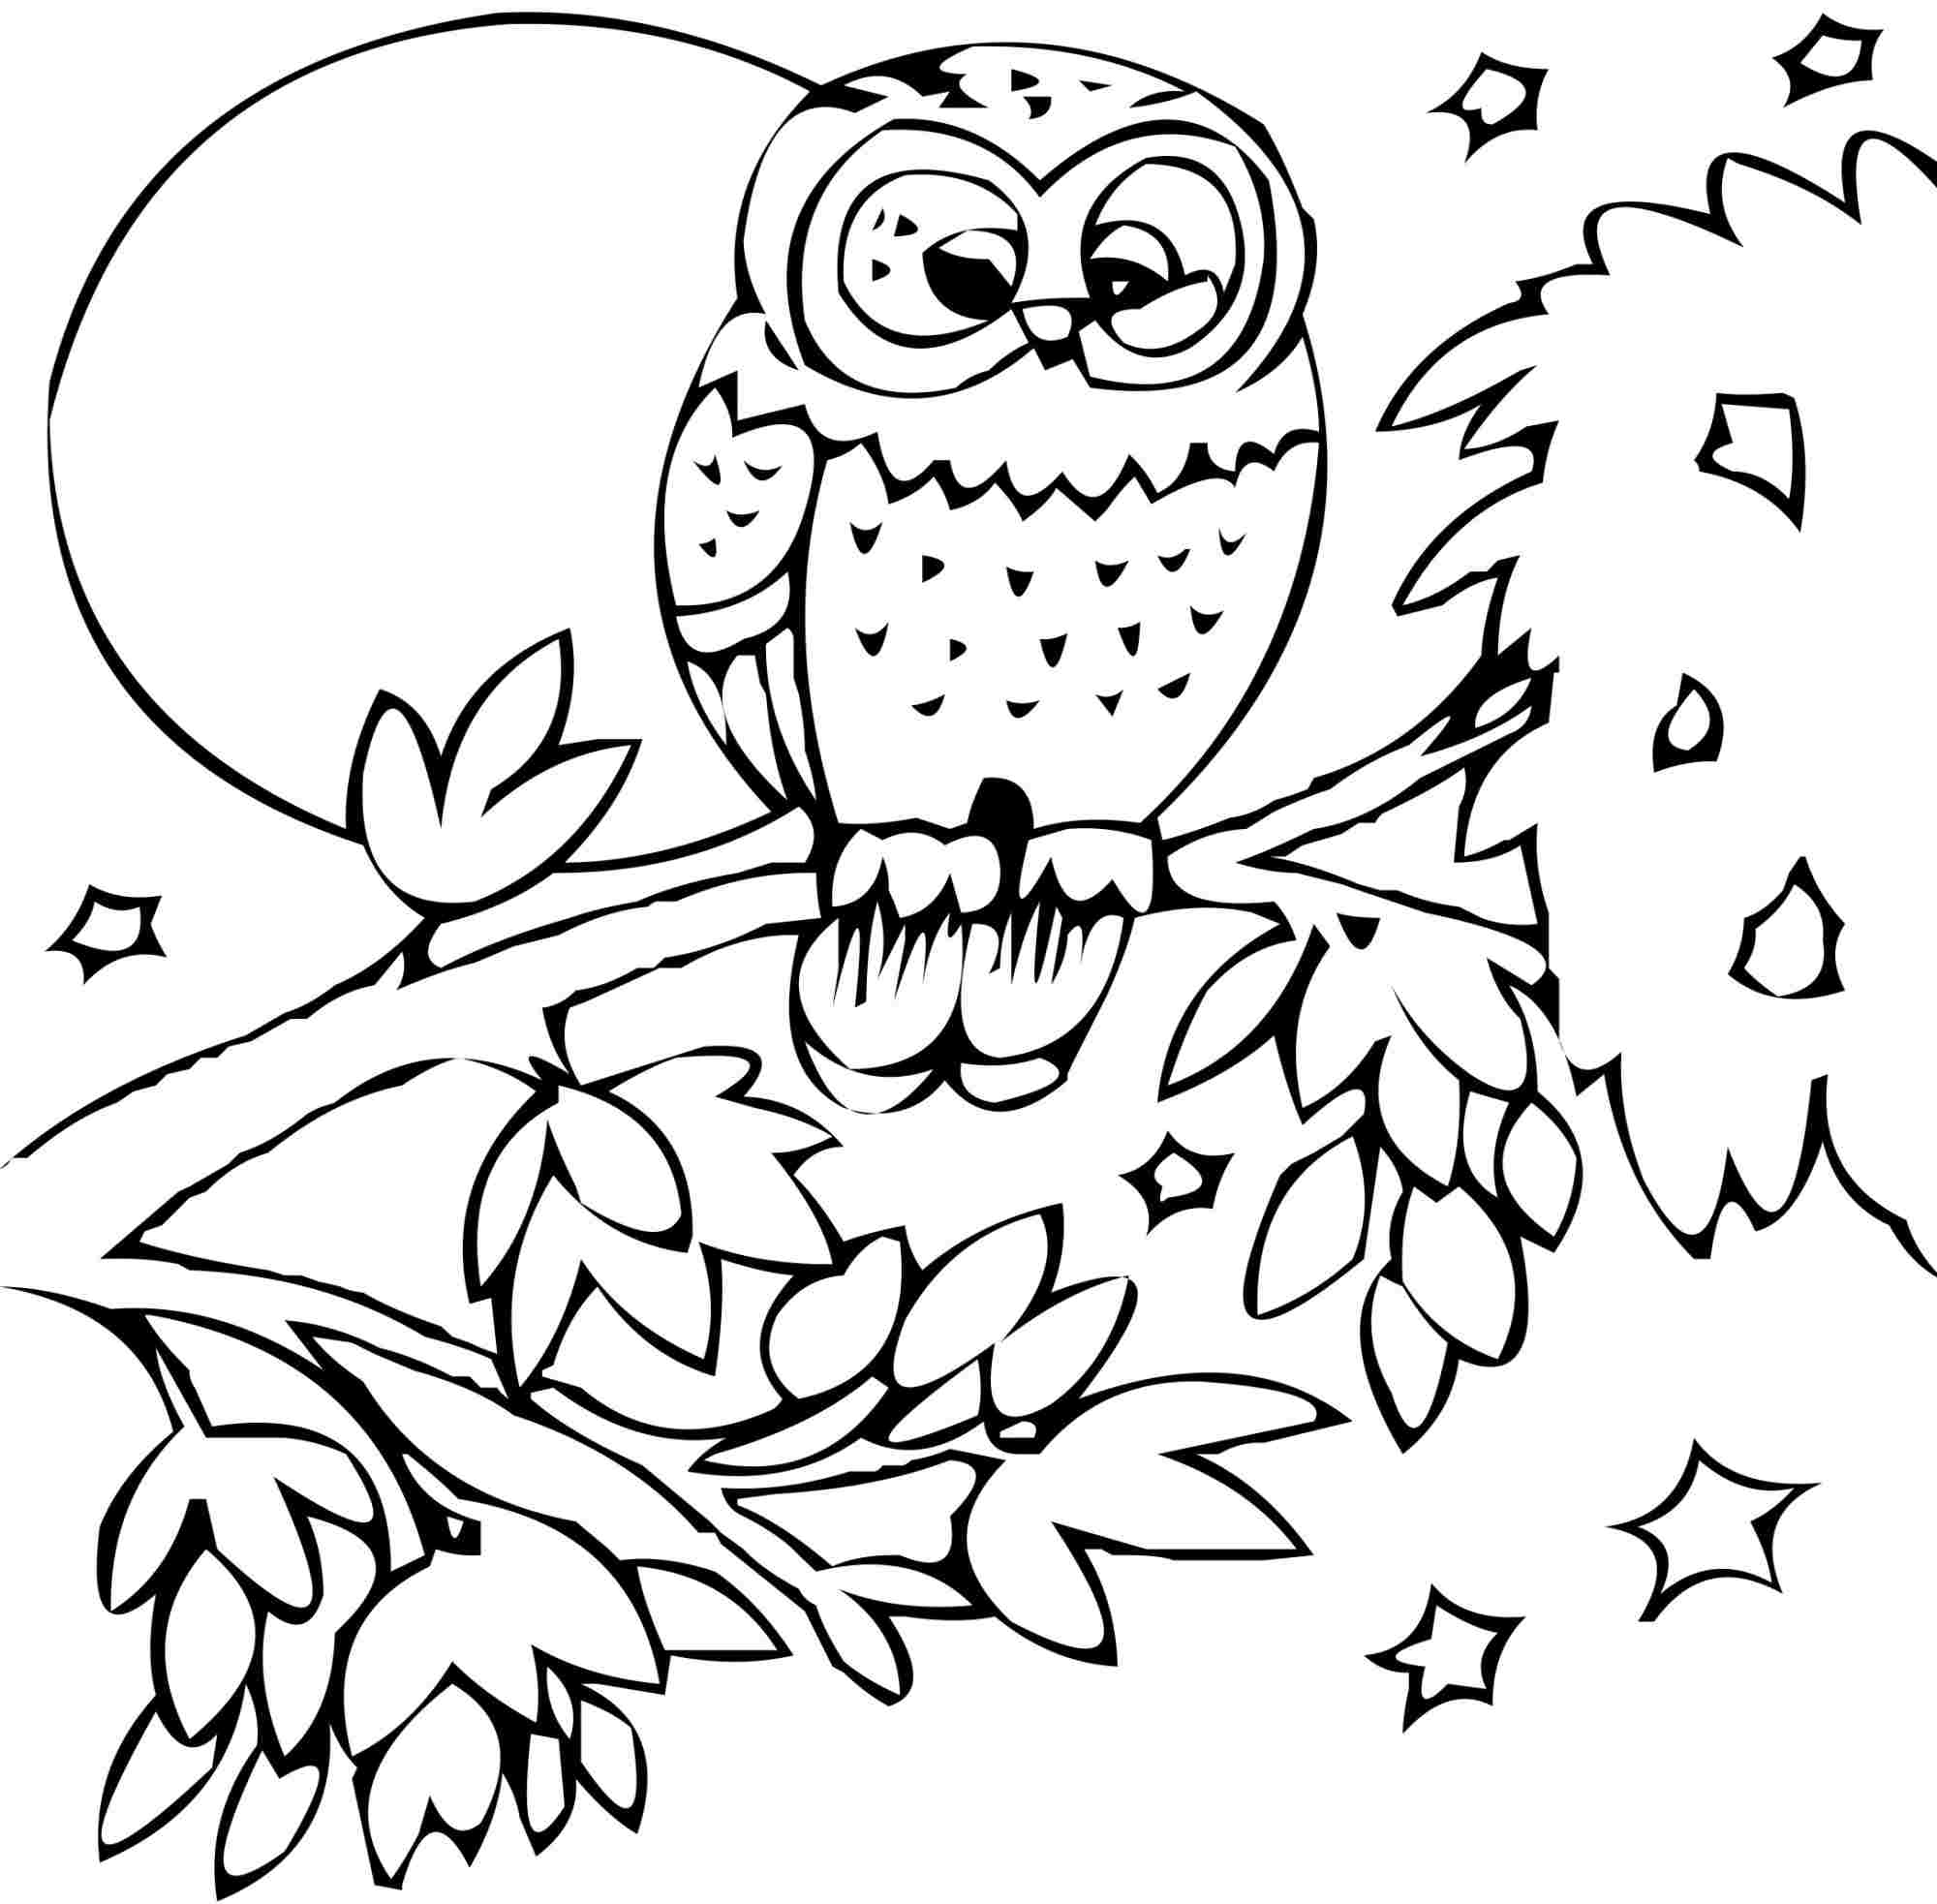 the best free surprise coloring page images  download from